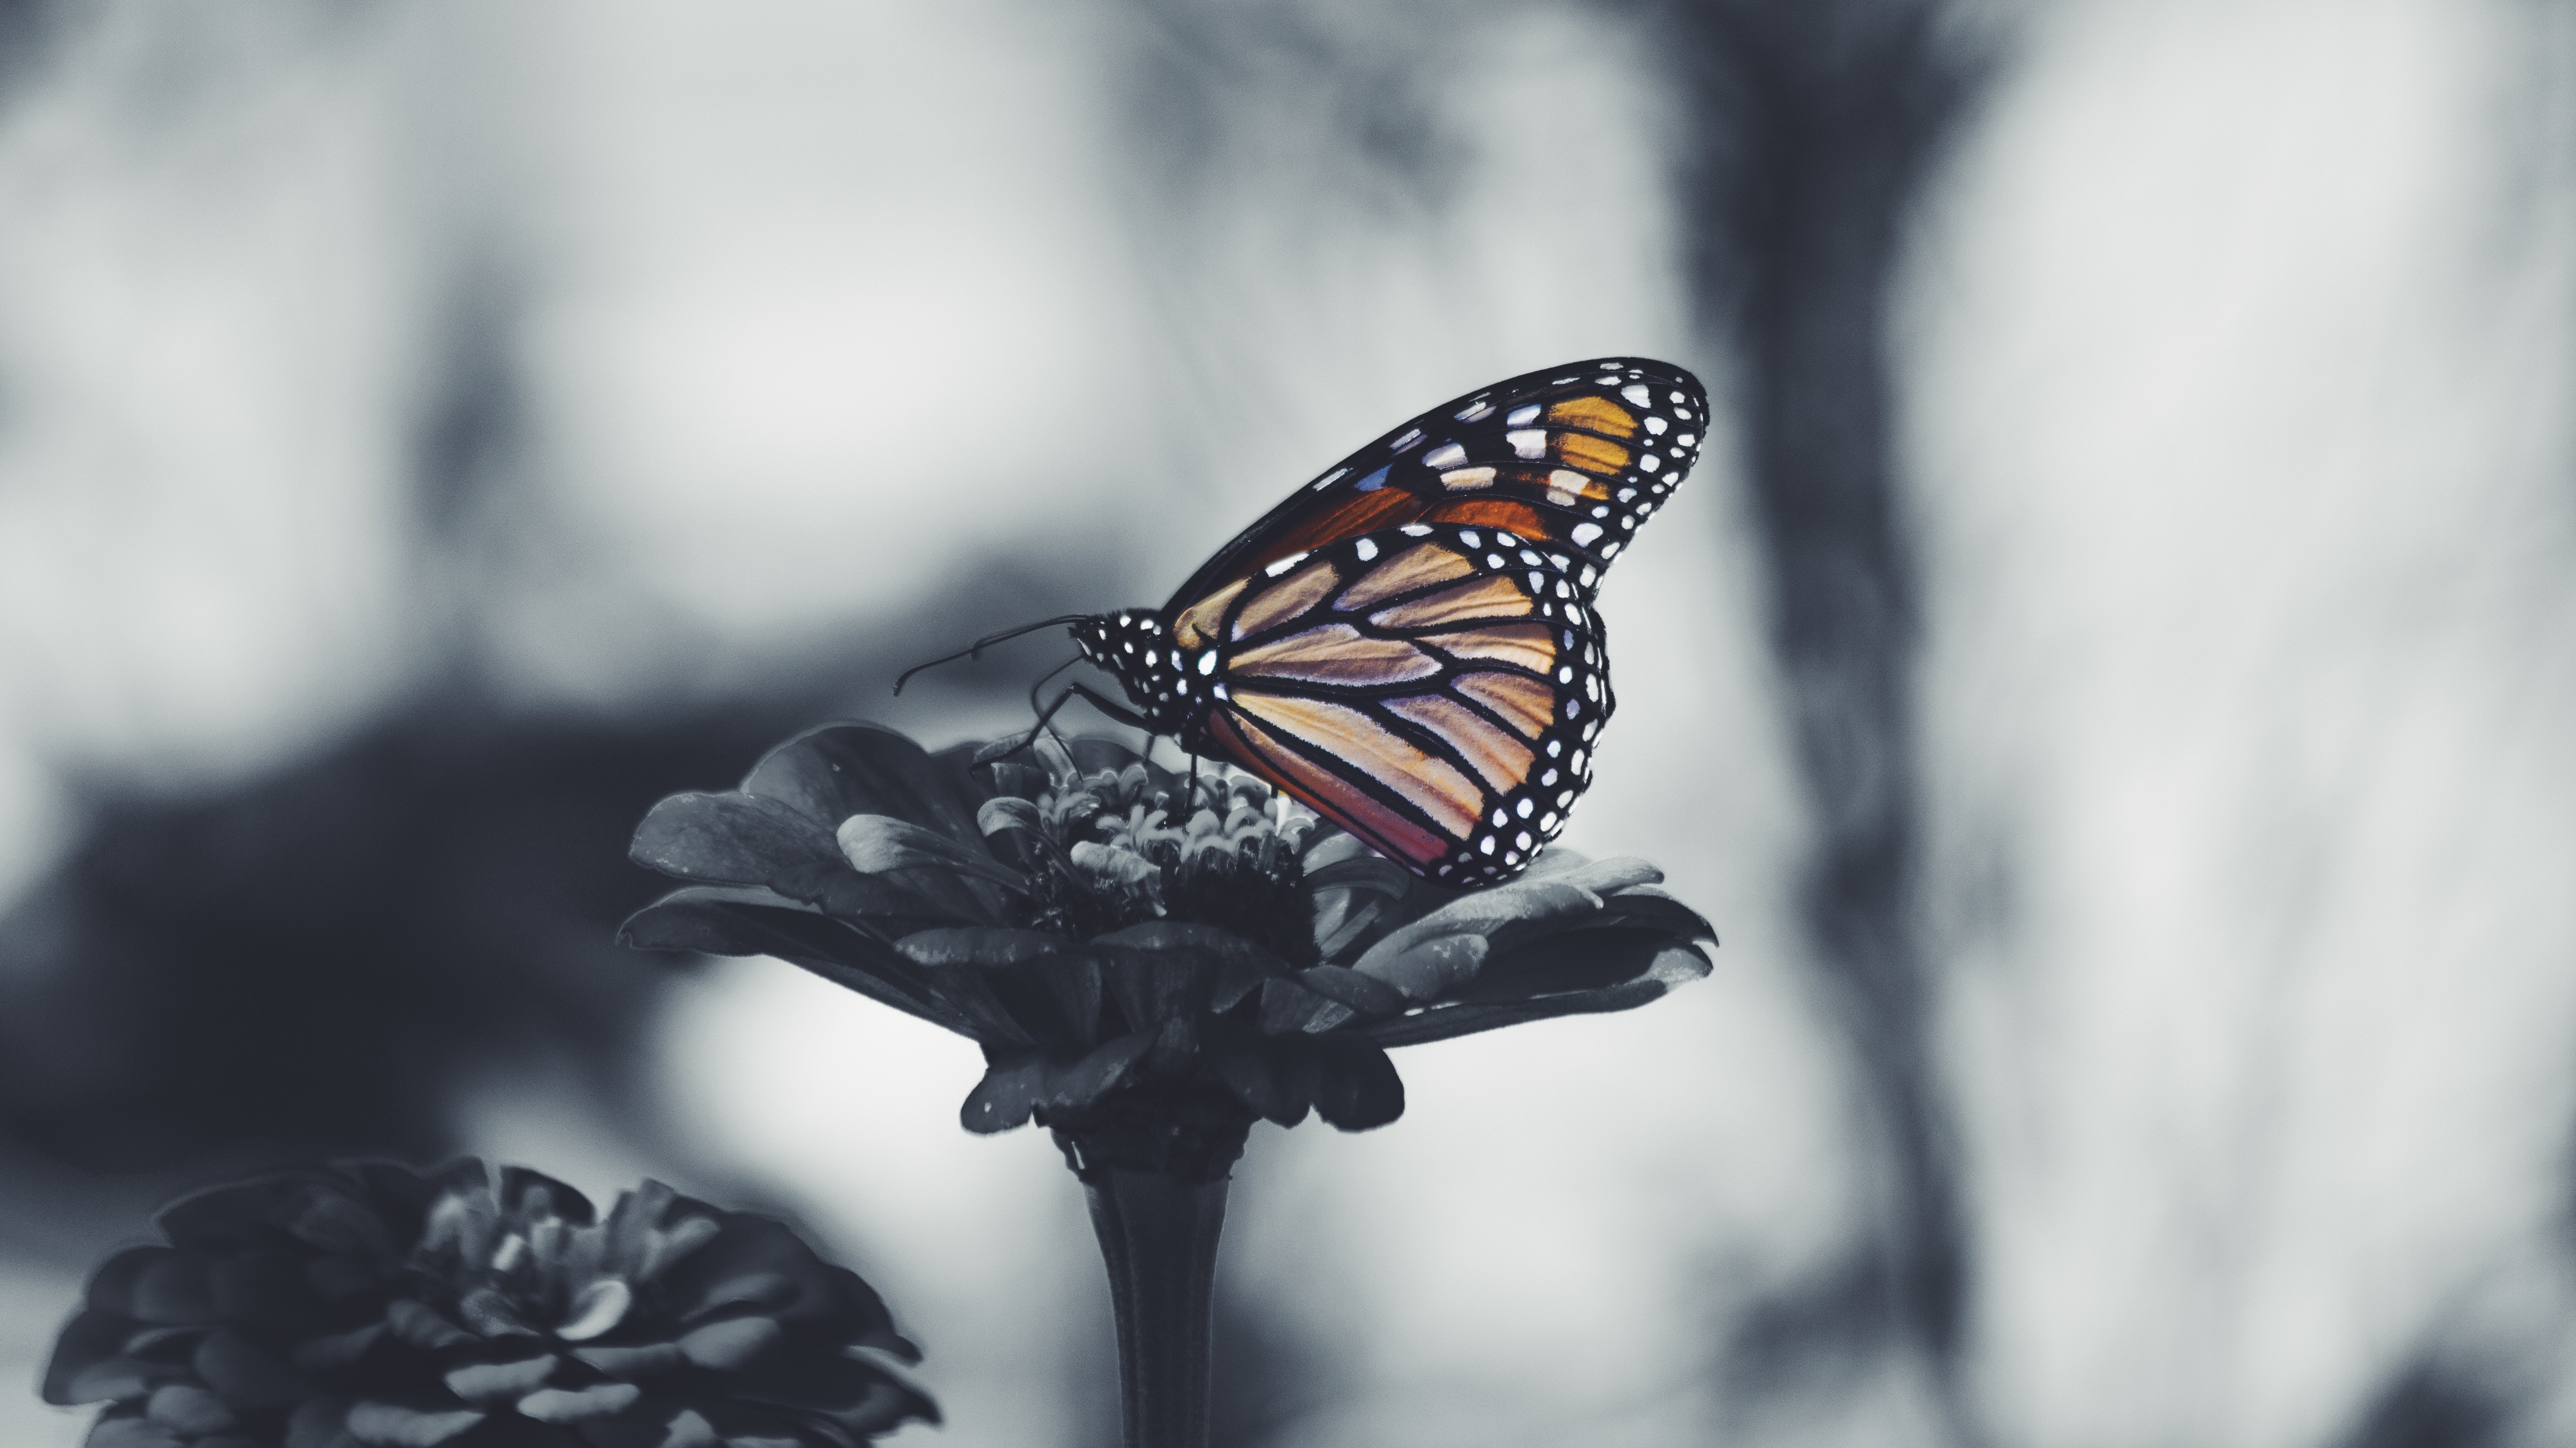 Butterfly 5k Black And White Desktop Background Wallpaper Butterflies Depression 1853883 Hd Wallpaper Backgrounds Download